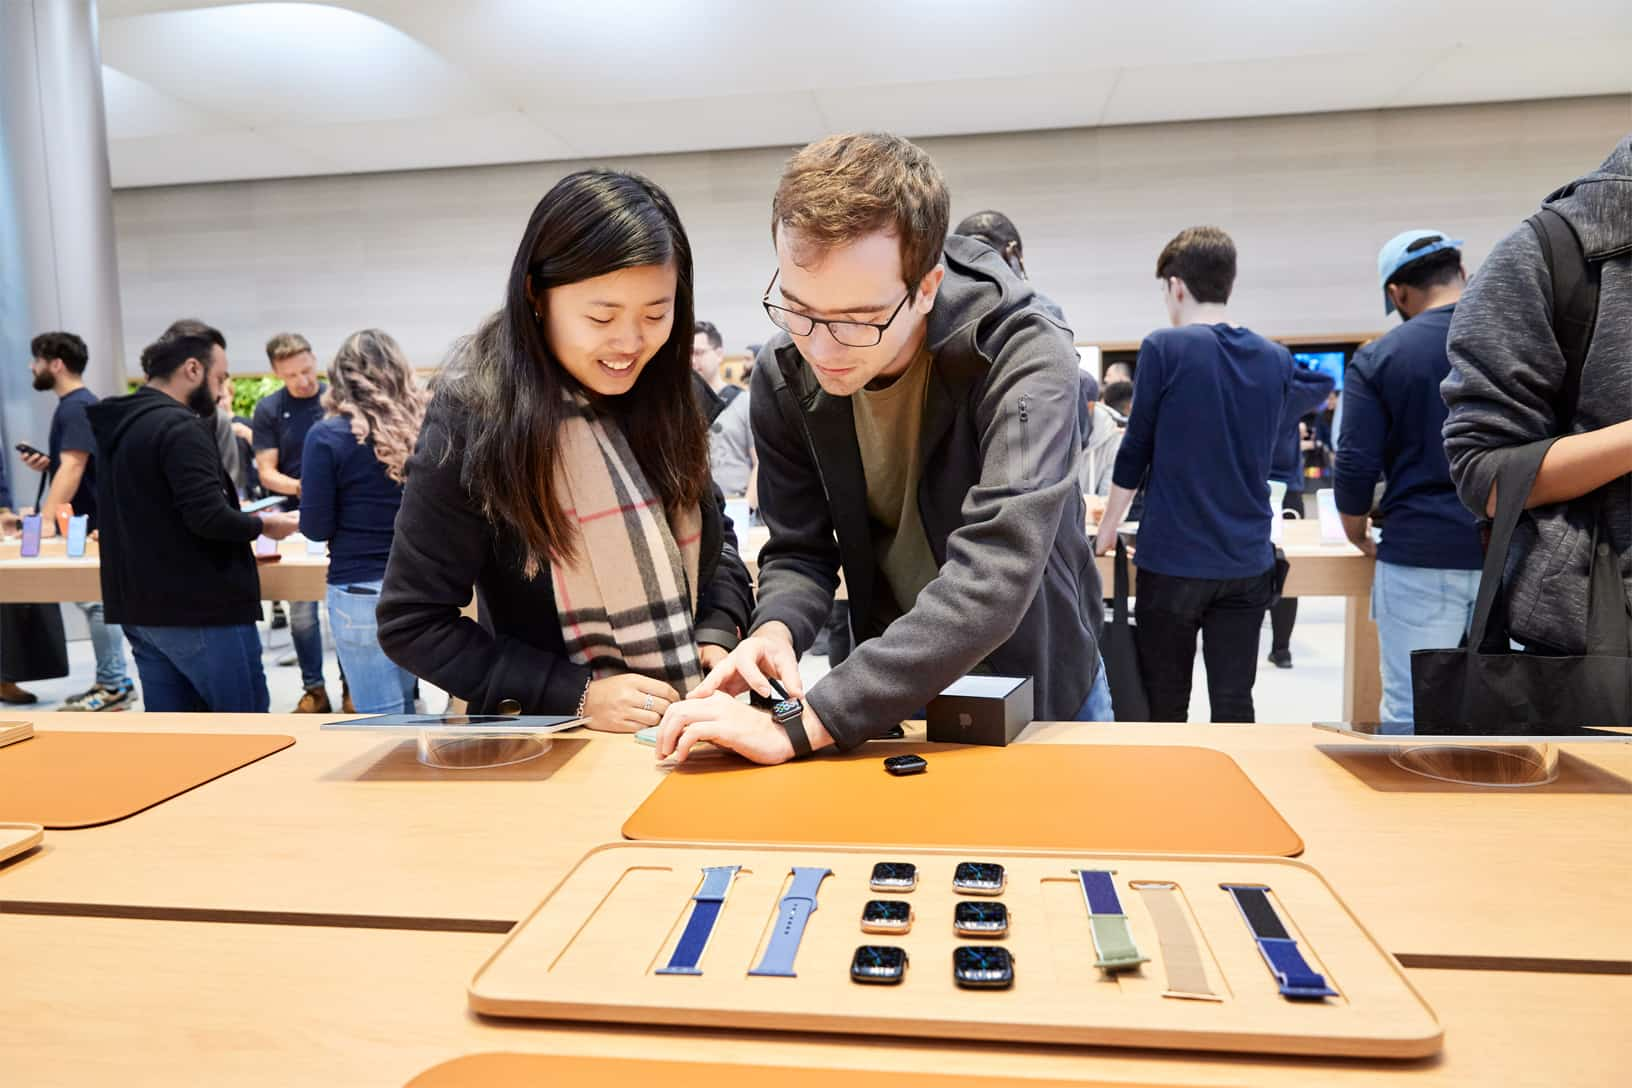 Apple Iphone 11 Pro Apple Watch 5 Availability Ny Guests With New Apple Watch Series 5 092019